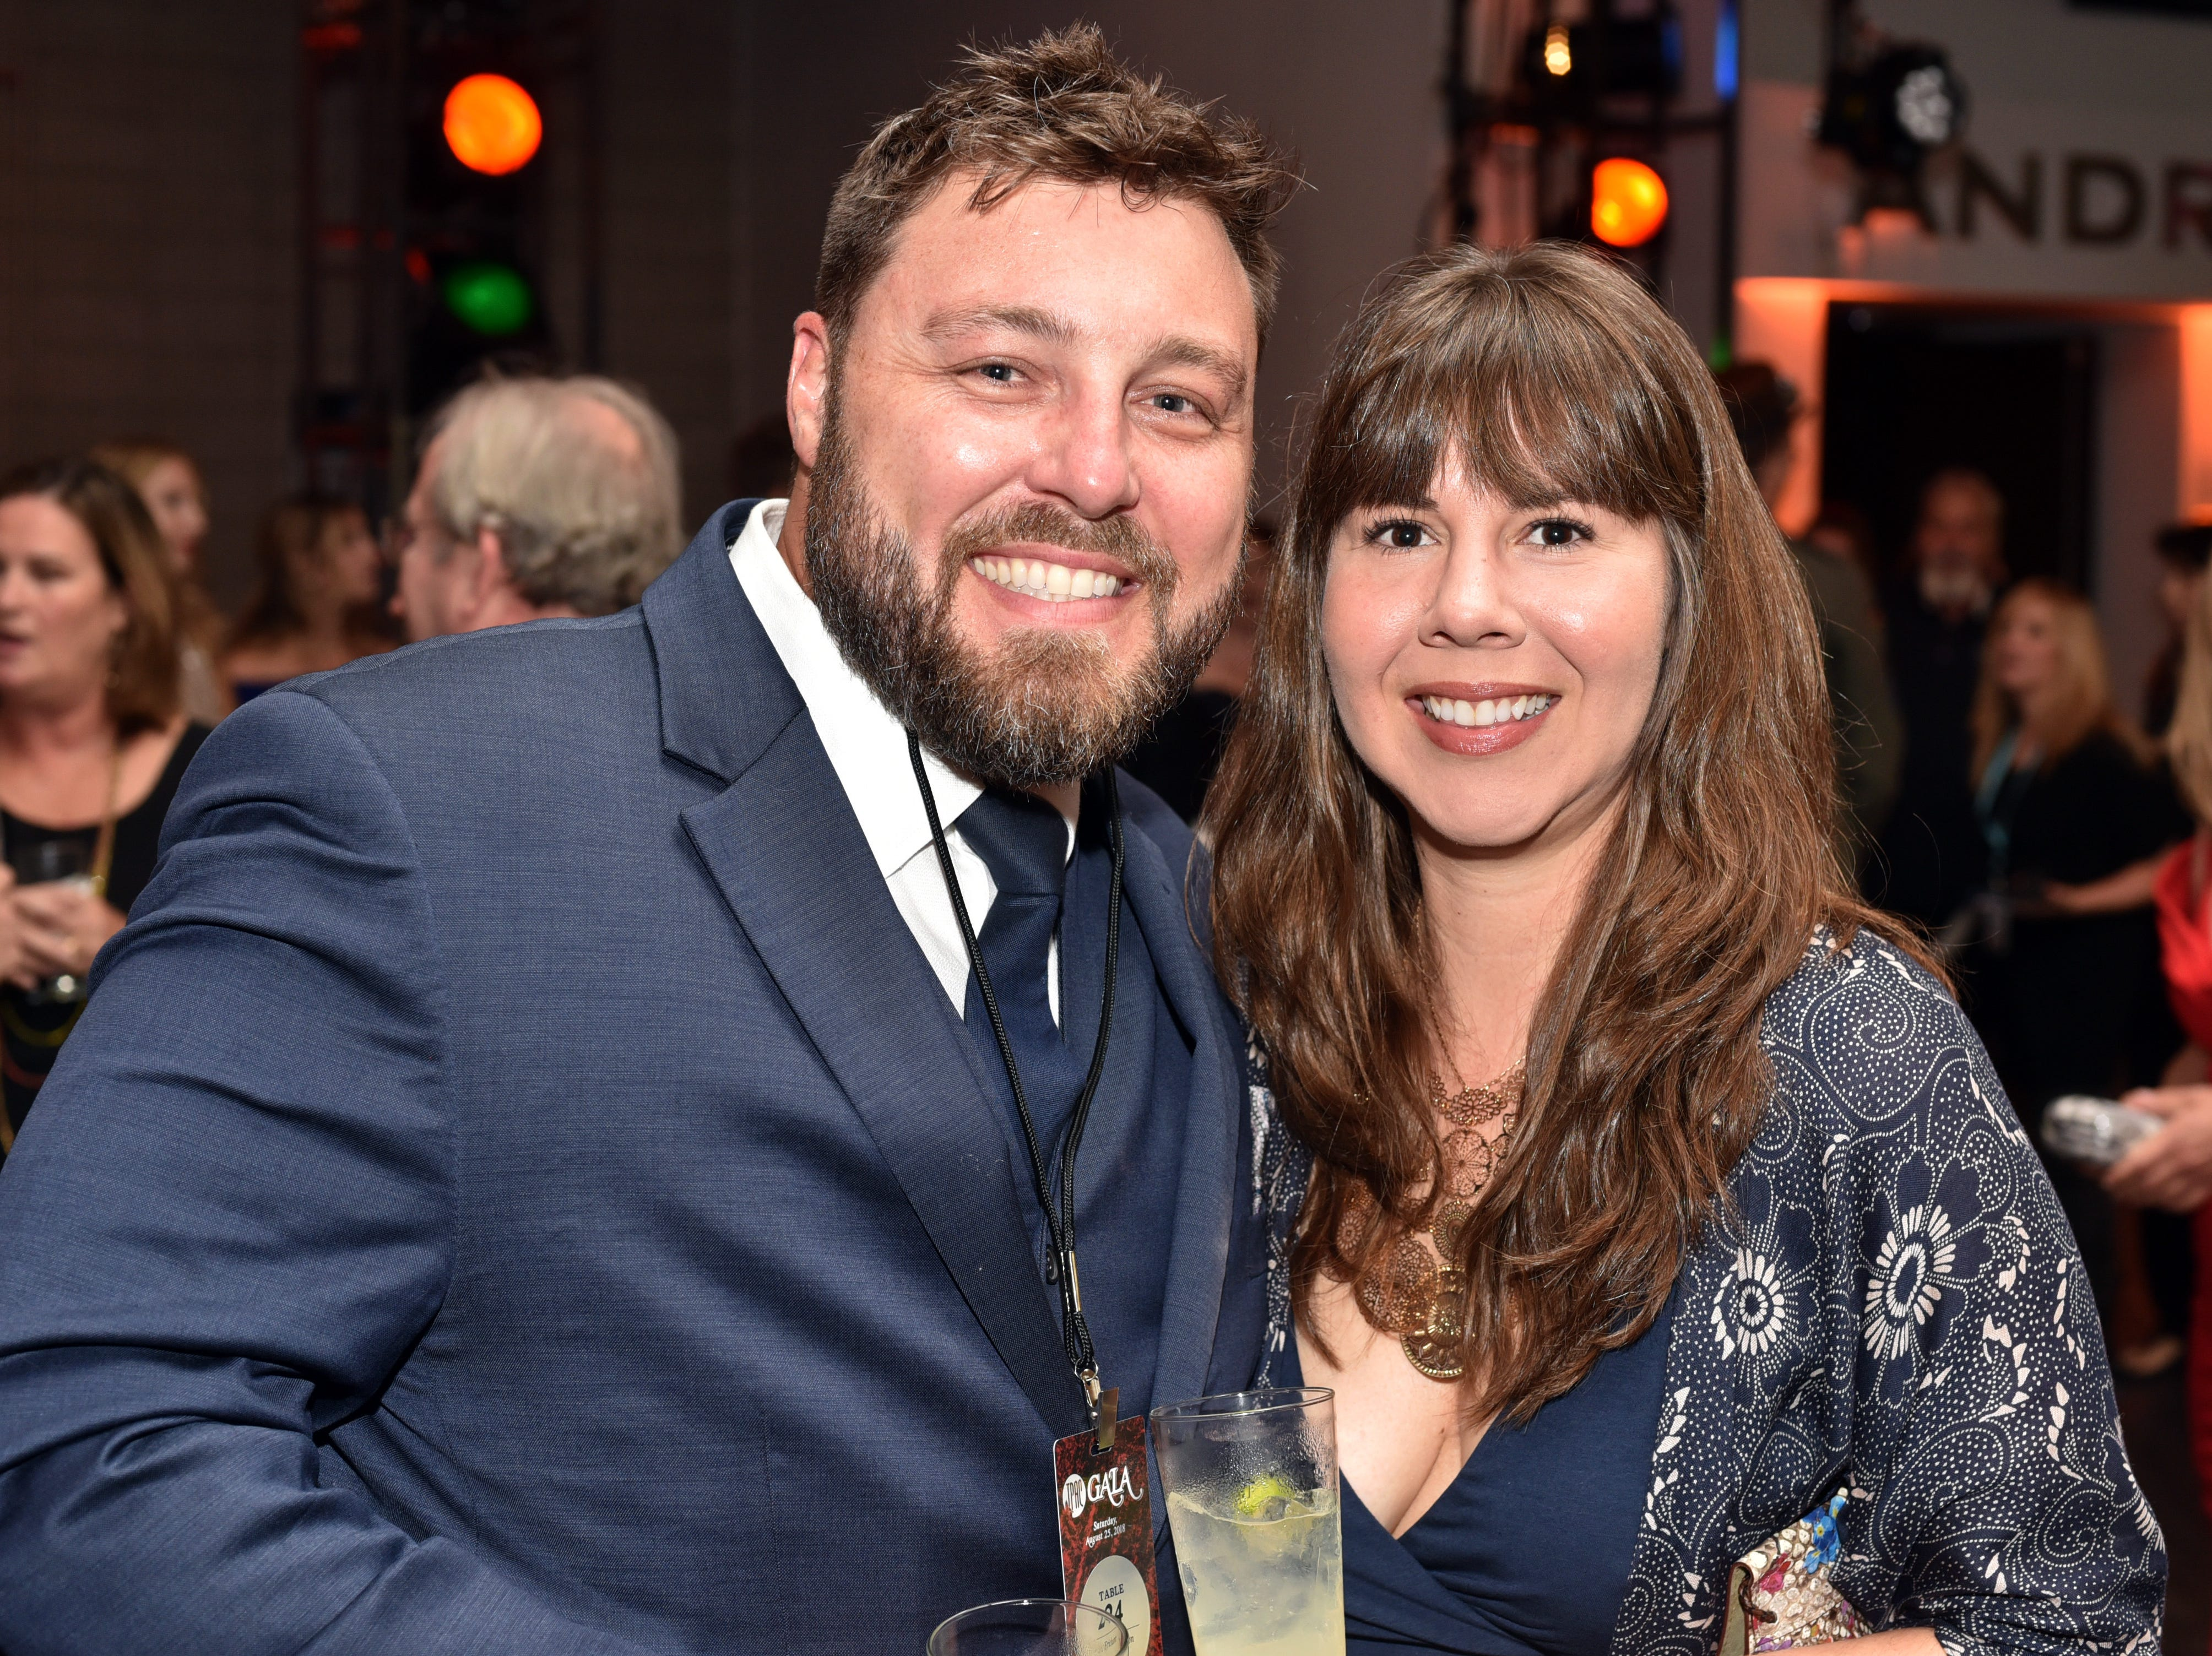 Peter Erickson and Lindsey Walker at the 18th annual TPAC Gala on Aug. 25.